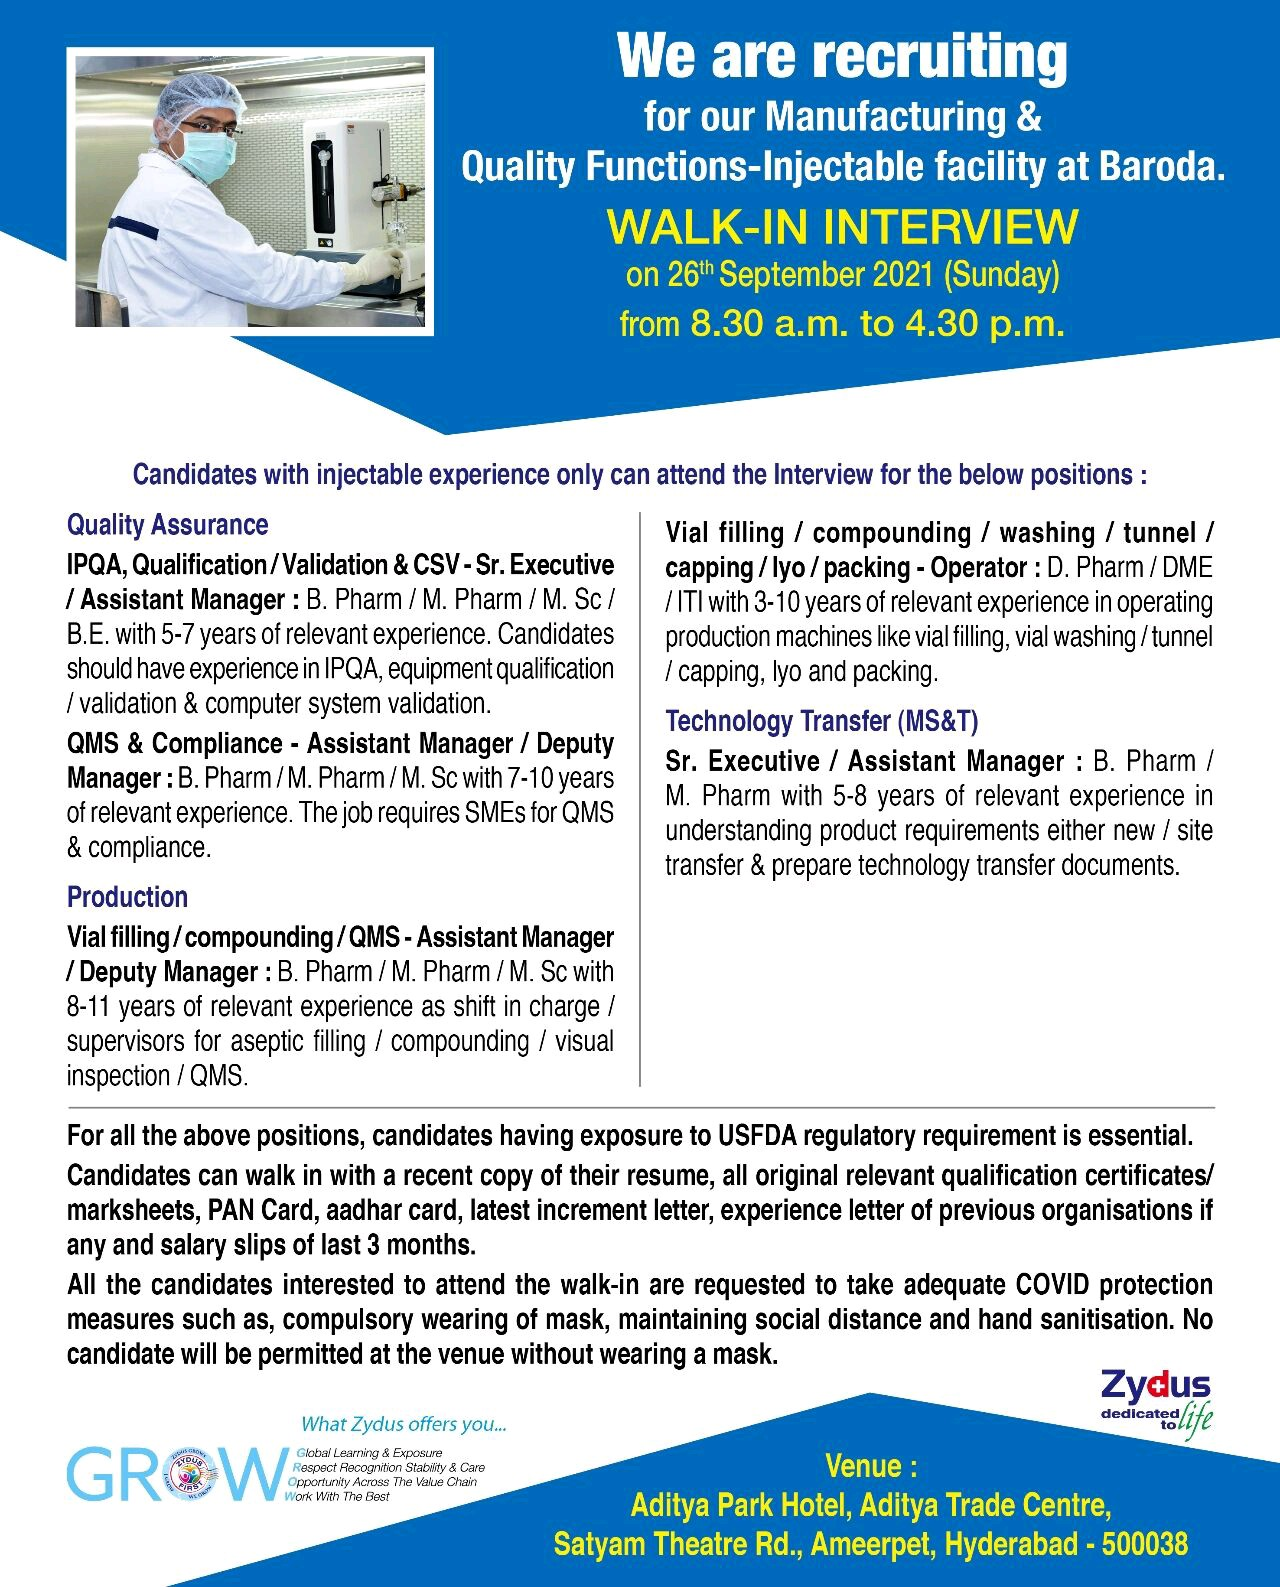 Walk-In By Zydus For QA, Production & Technology Transfer Department